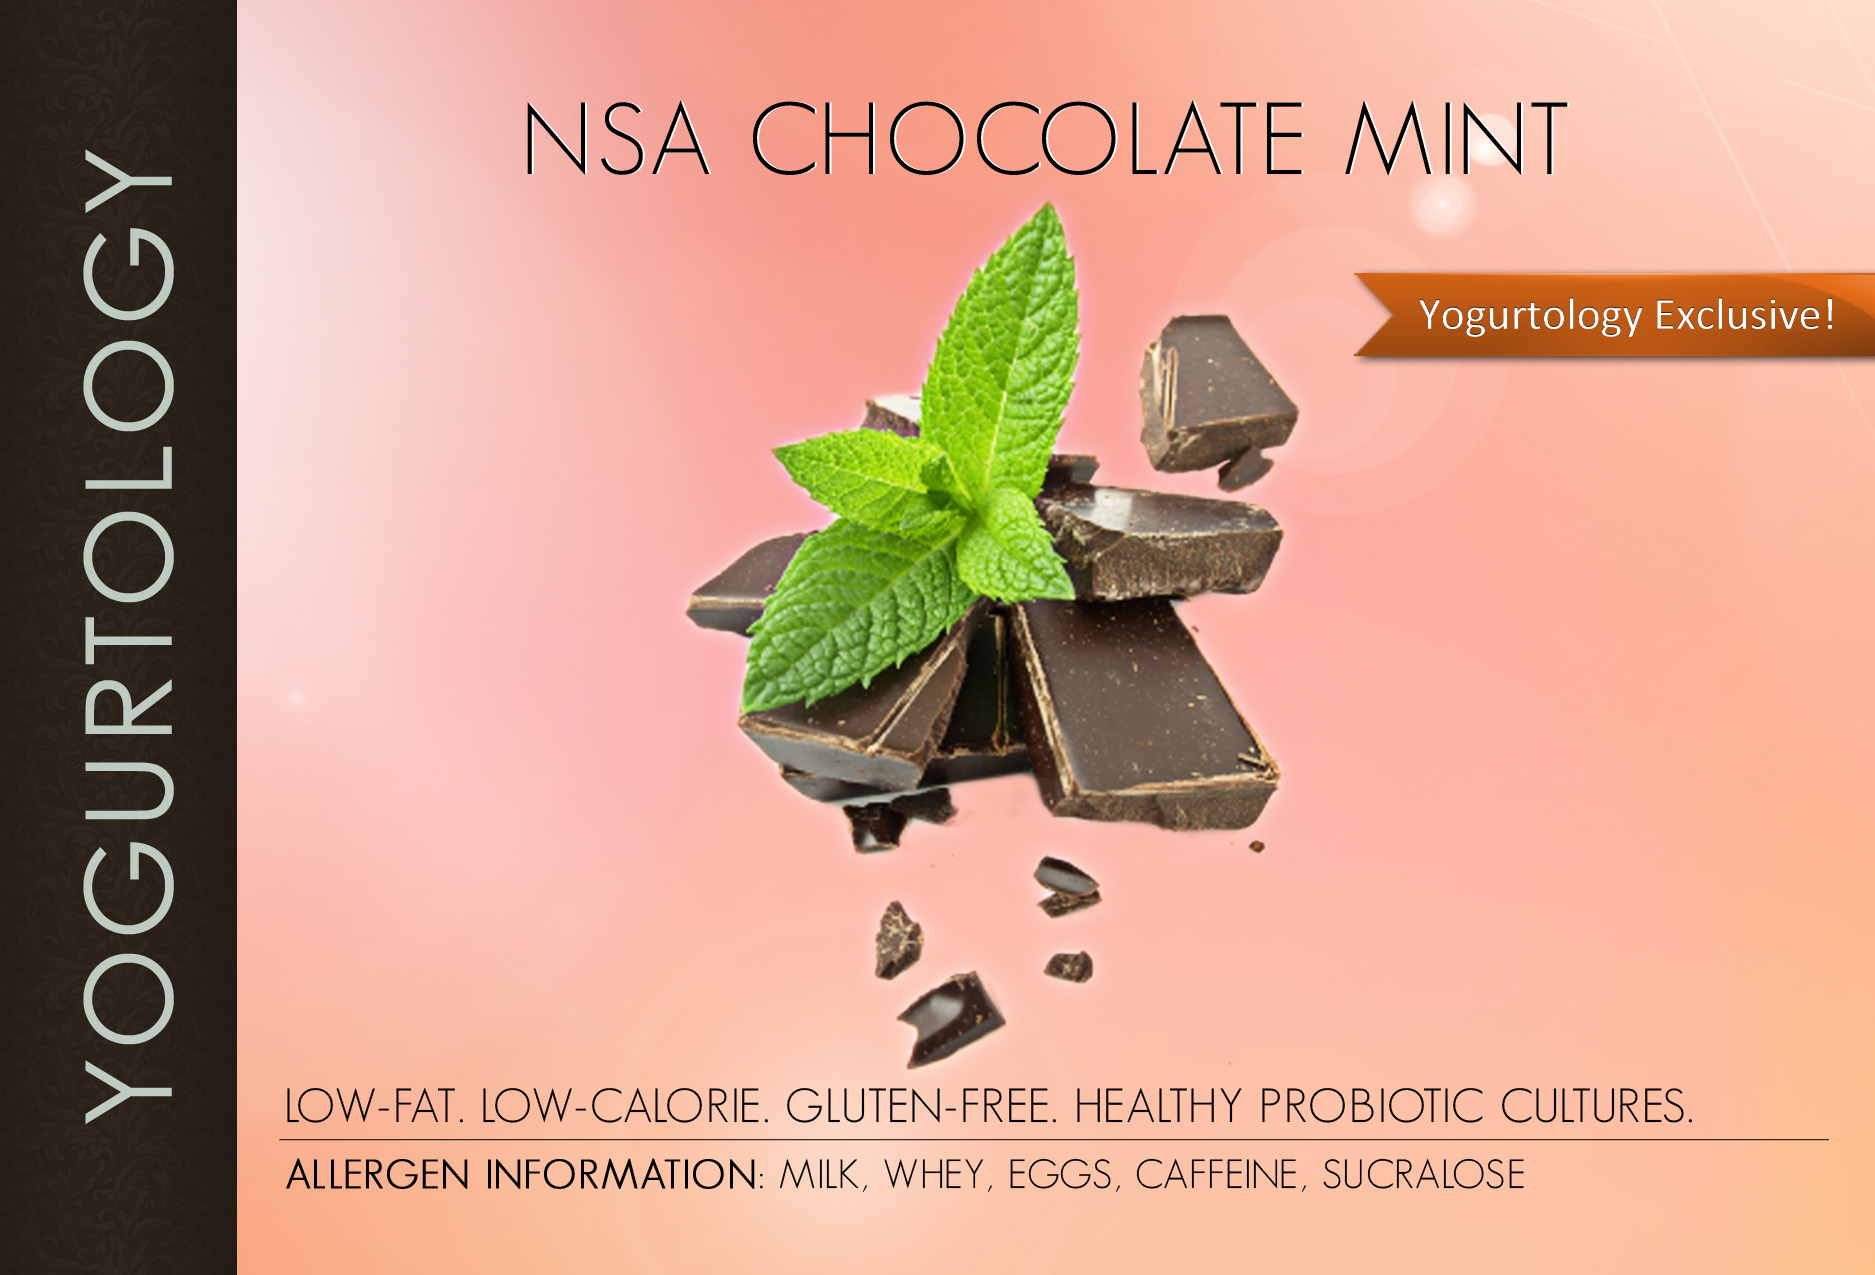 NSA Chocolate Mint